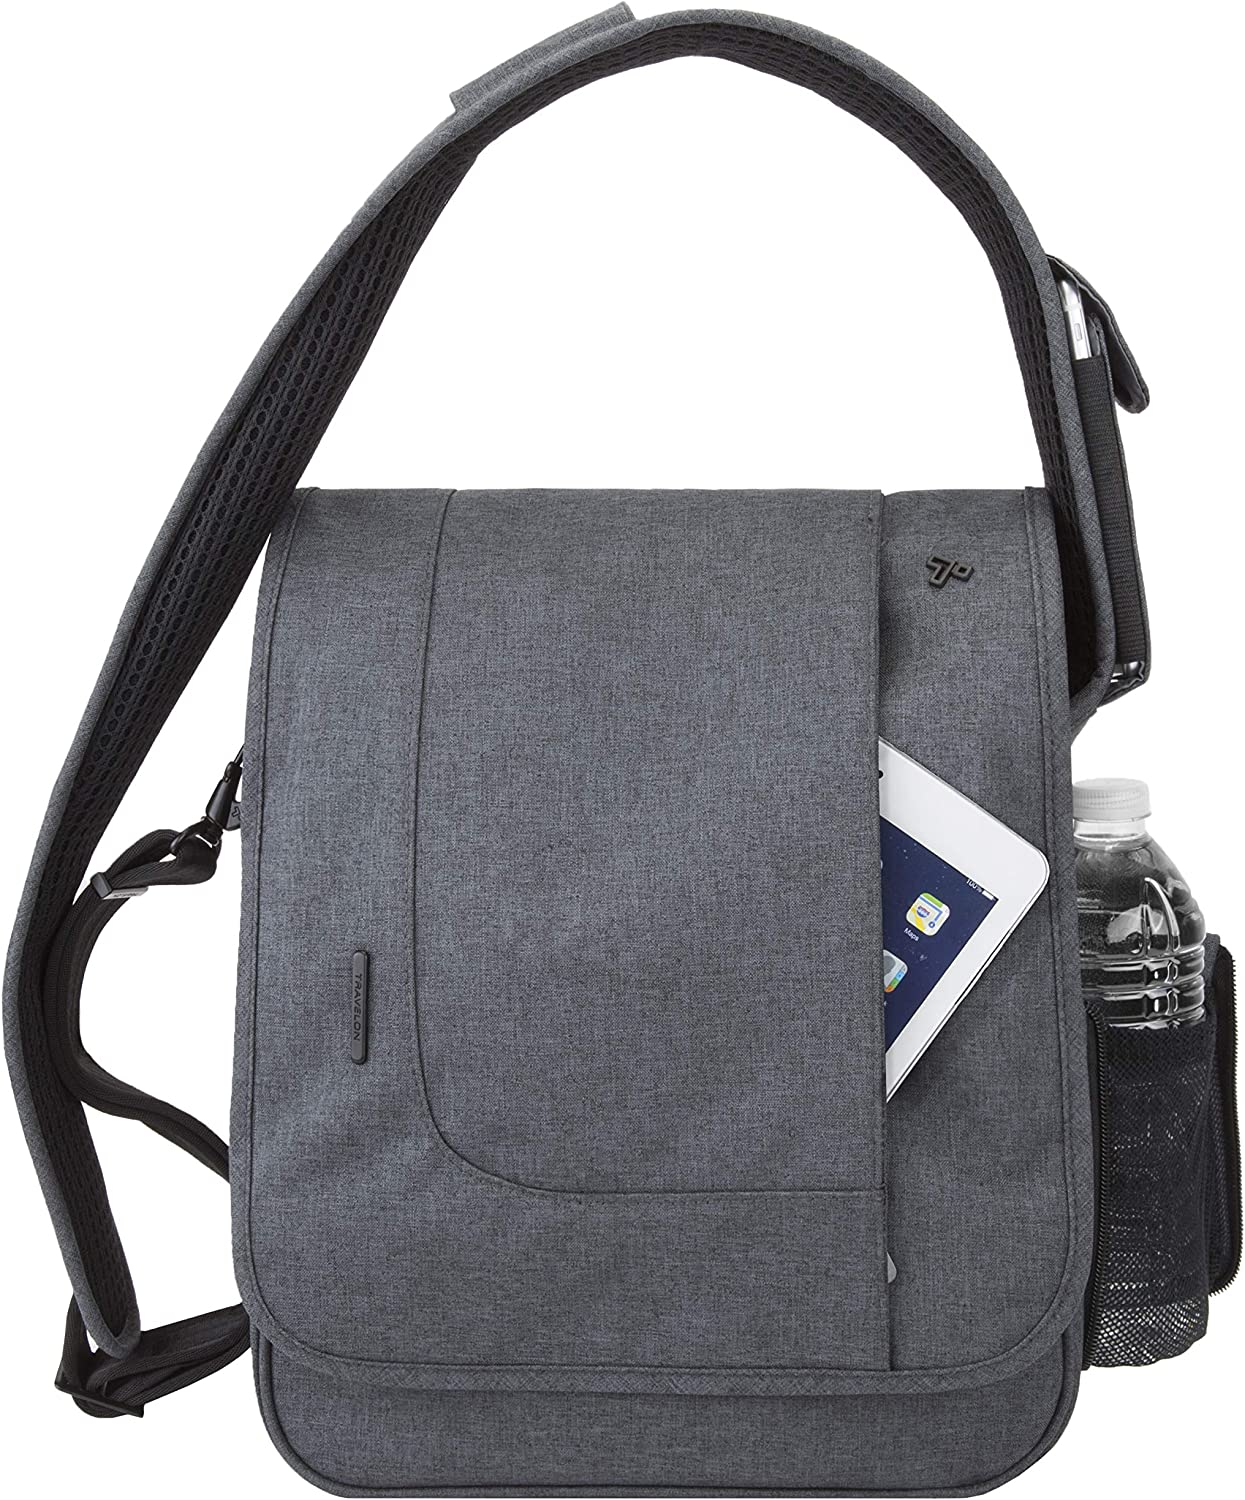 Travelon Anti-Theft Urban N S Messenger Bag – Slate